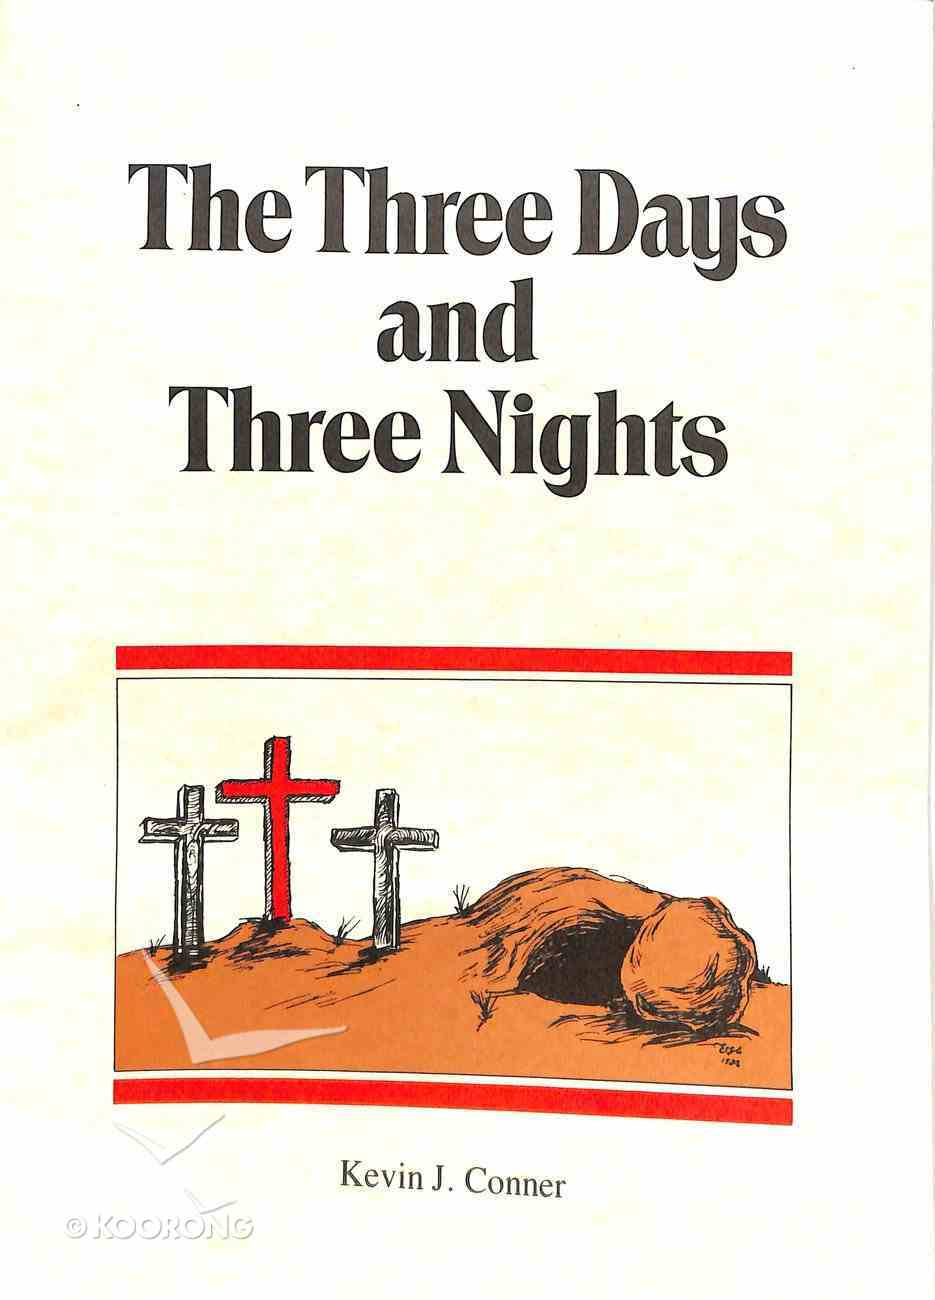 The Three Days and Three Nights (With Charts) Booklet